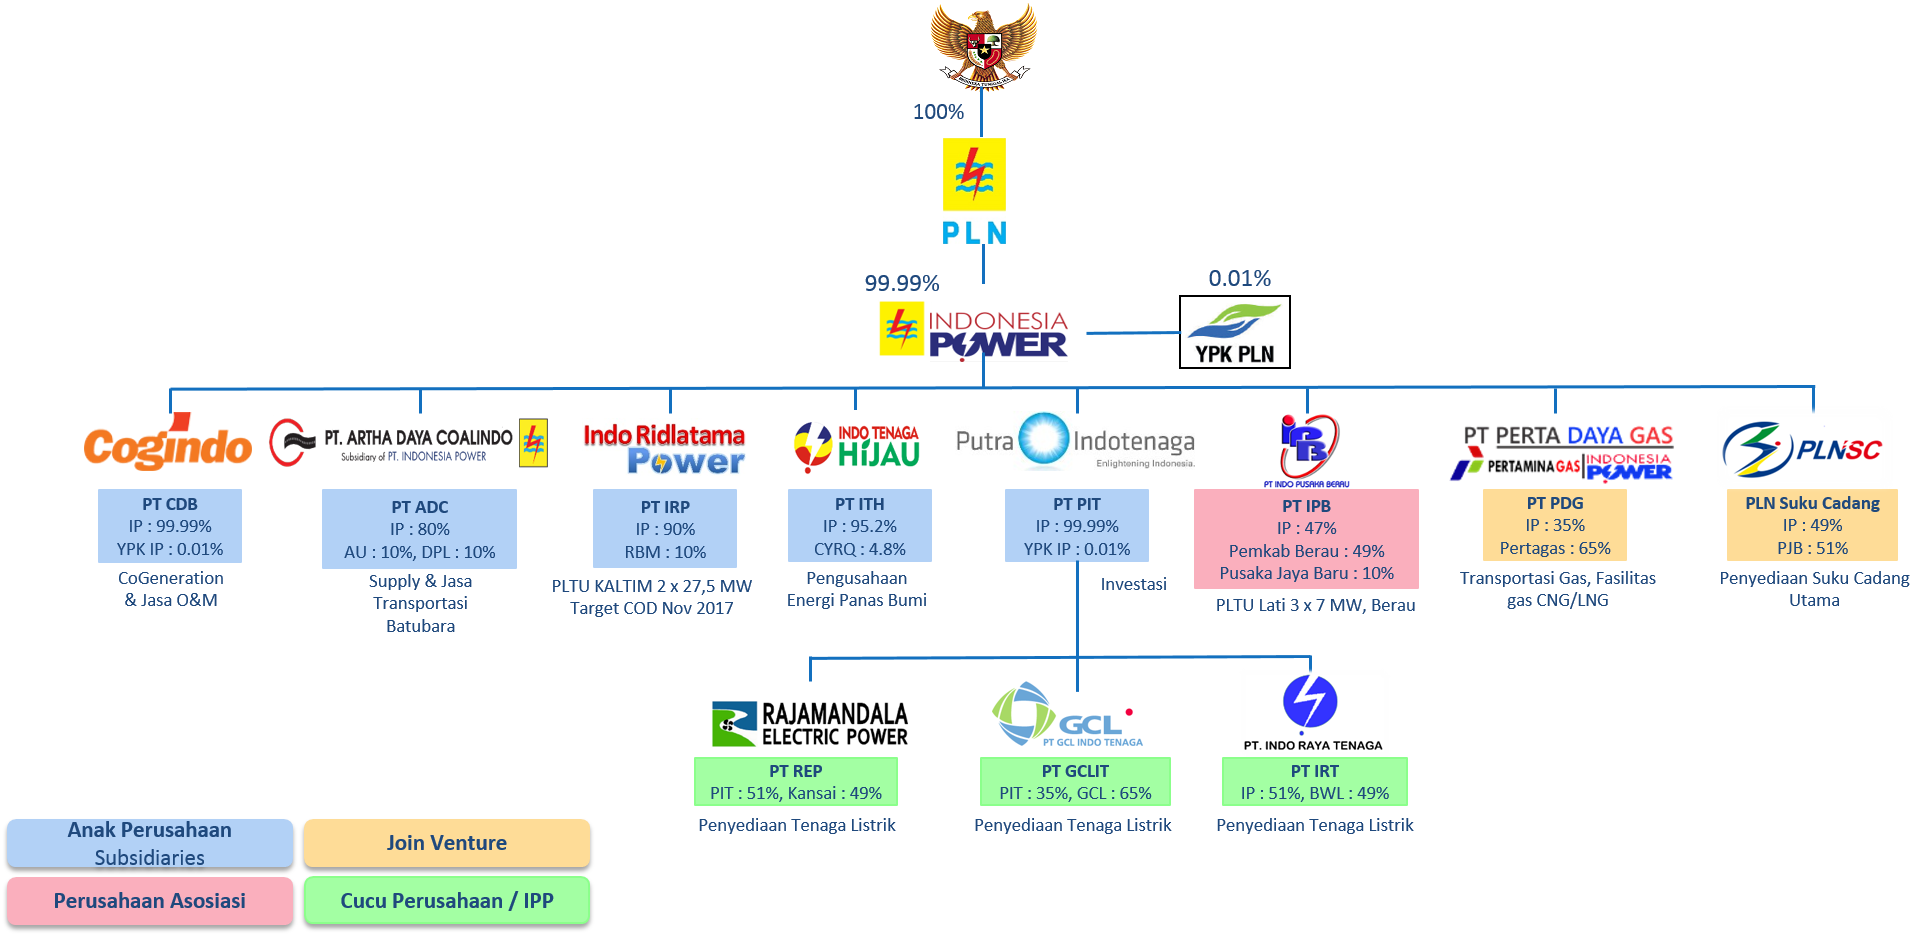 Indonesia Power Overview